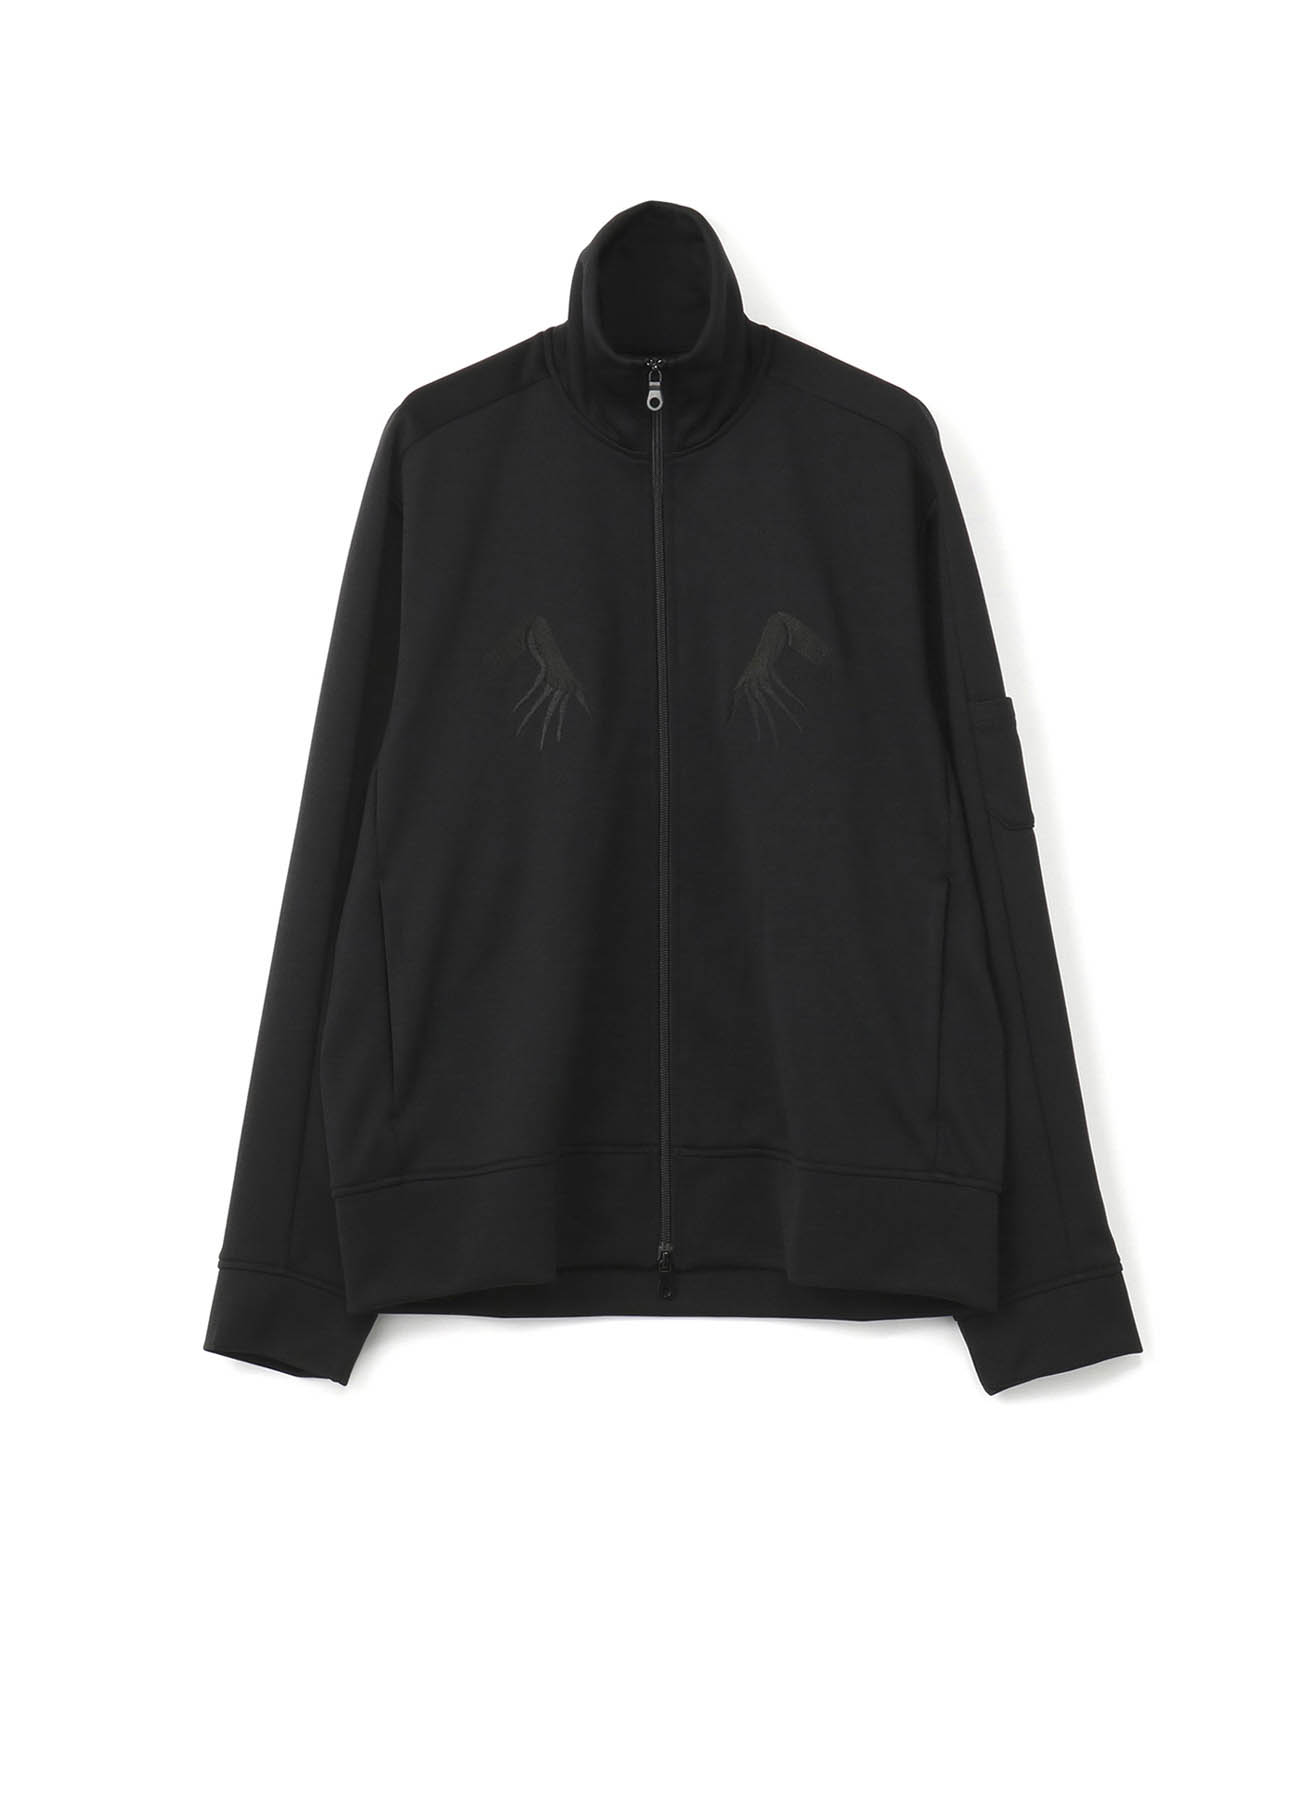 Pe/Smooth Jersey The Hands of The Ghost Embroidery Track Jacket